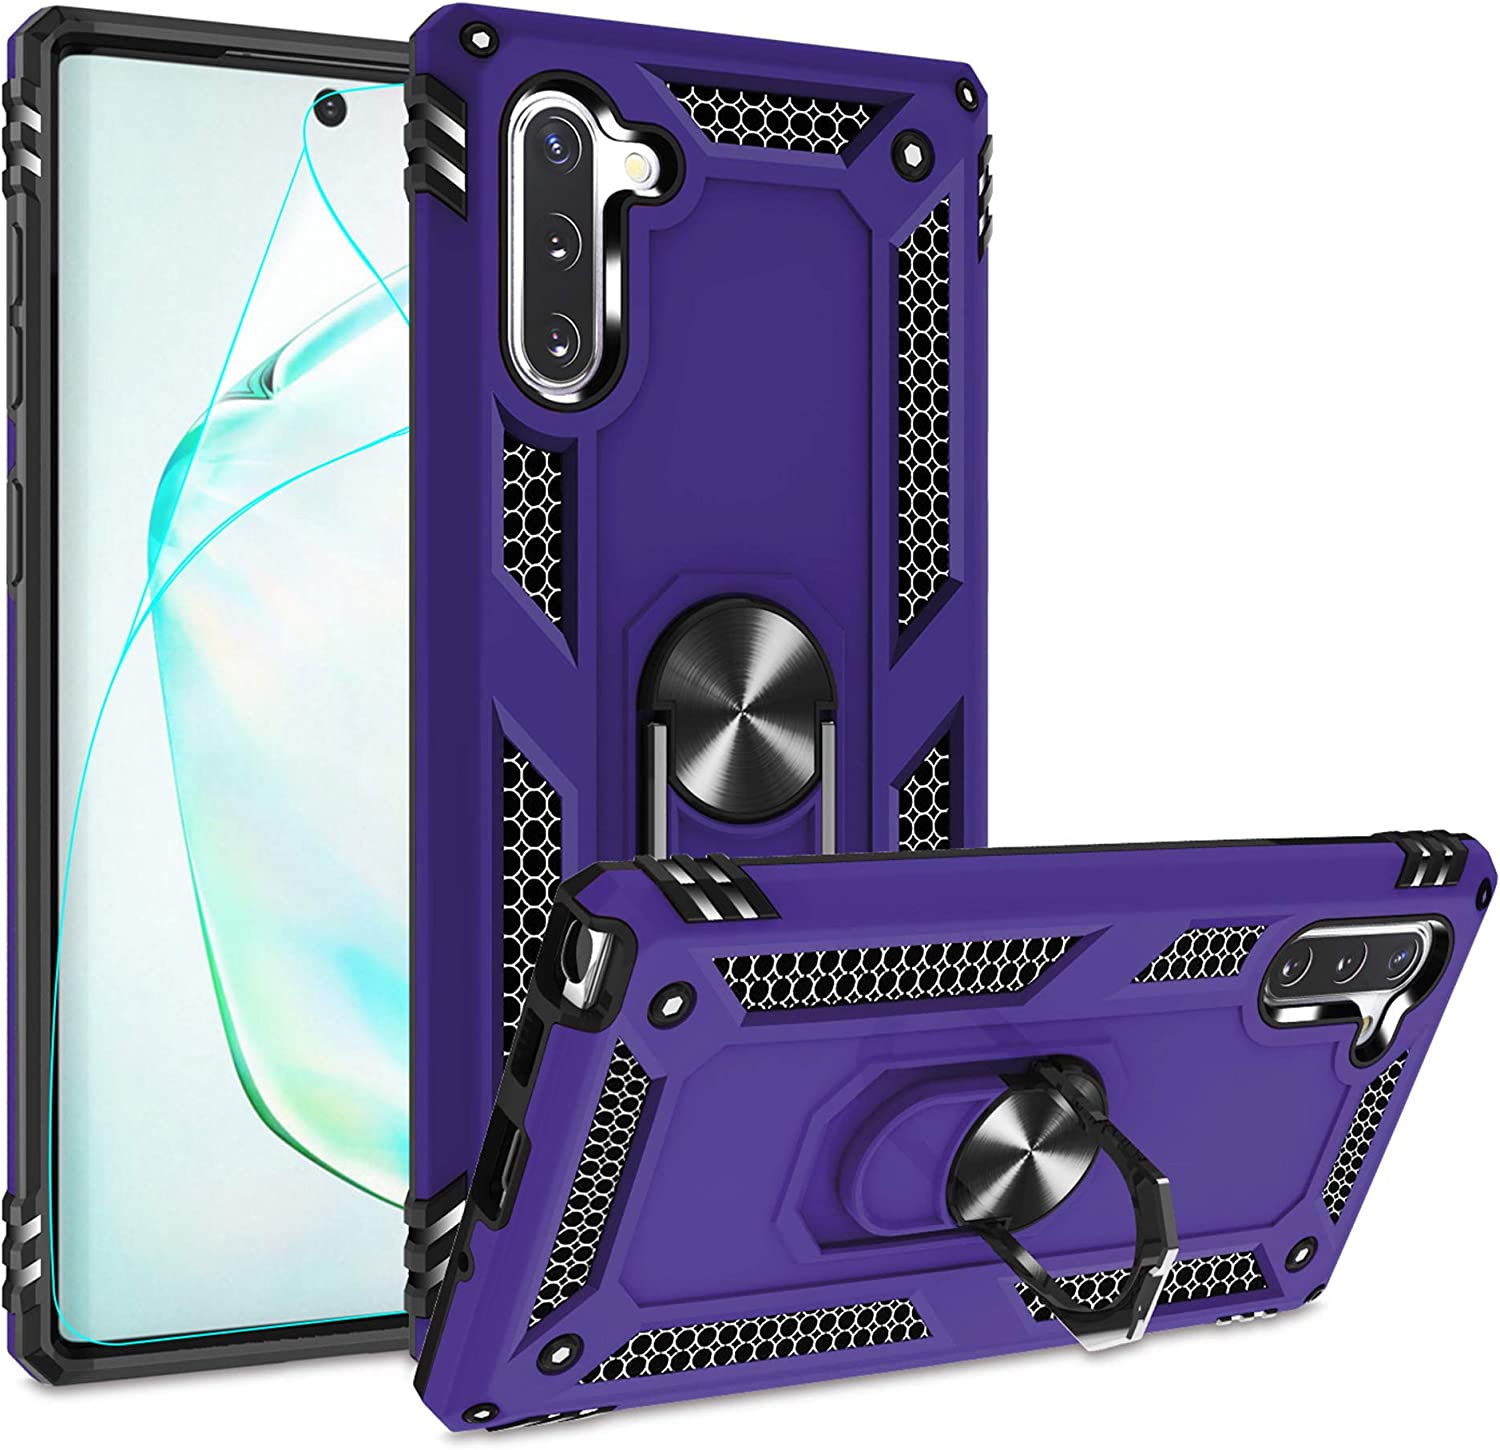 Compatible for Samsung Galaxy Note 10 Case with HD Screen Protector, Gritup Military-Grade Magnetic Kickstand Ring Dual Layer Shockproof Protective Phone Case for Samsung Note 10 Purple